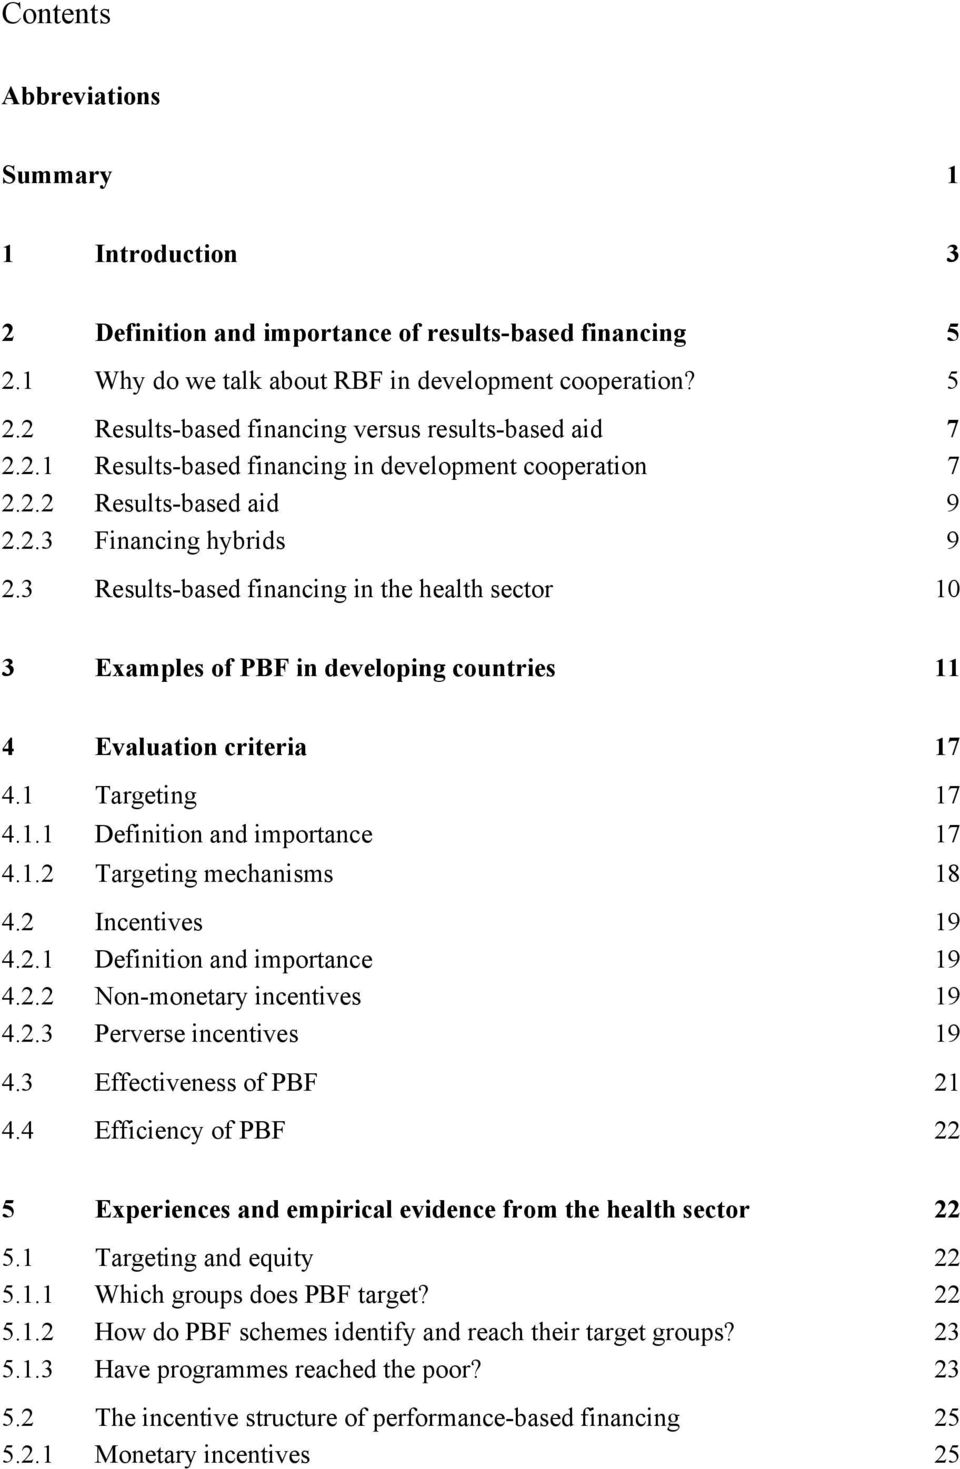 3 Results-based financing in the health sector 10 3 Examples of PBF in developing countries 11 4 Evaluation criteria 17 4.1 Targeting 17 4.1.1 Definition and importance 17 4.1.2 Targeting mechanisms 18 4.